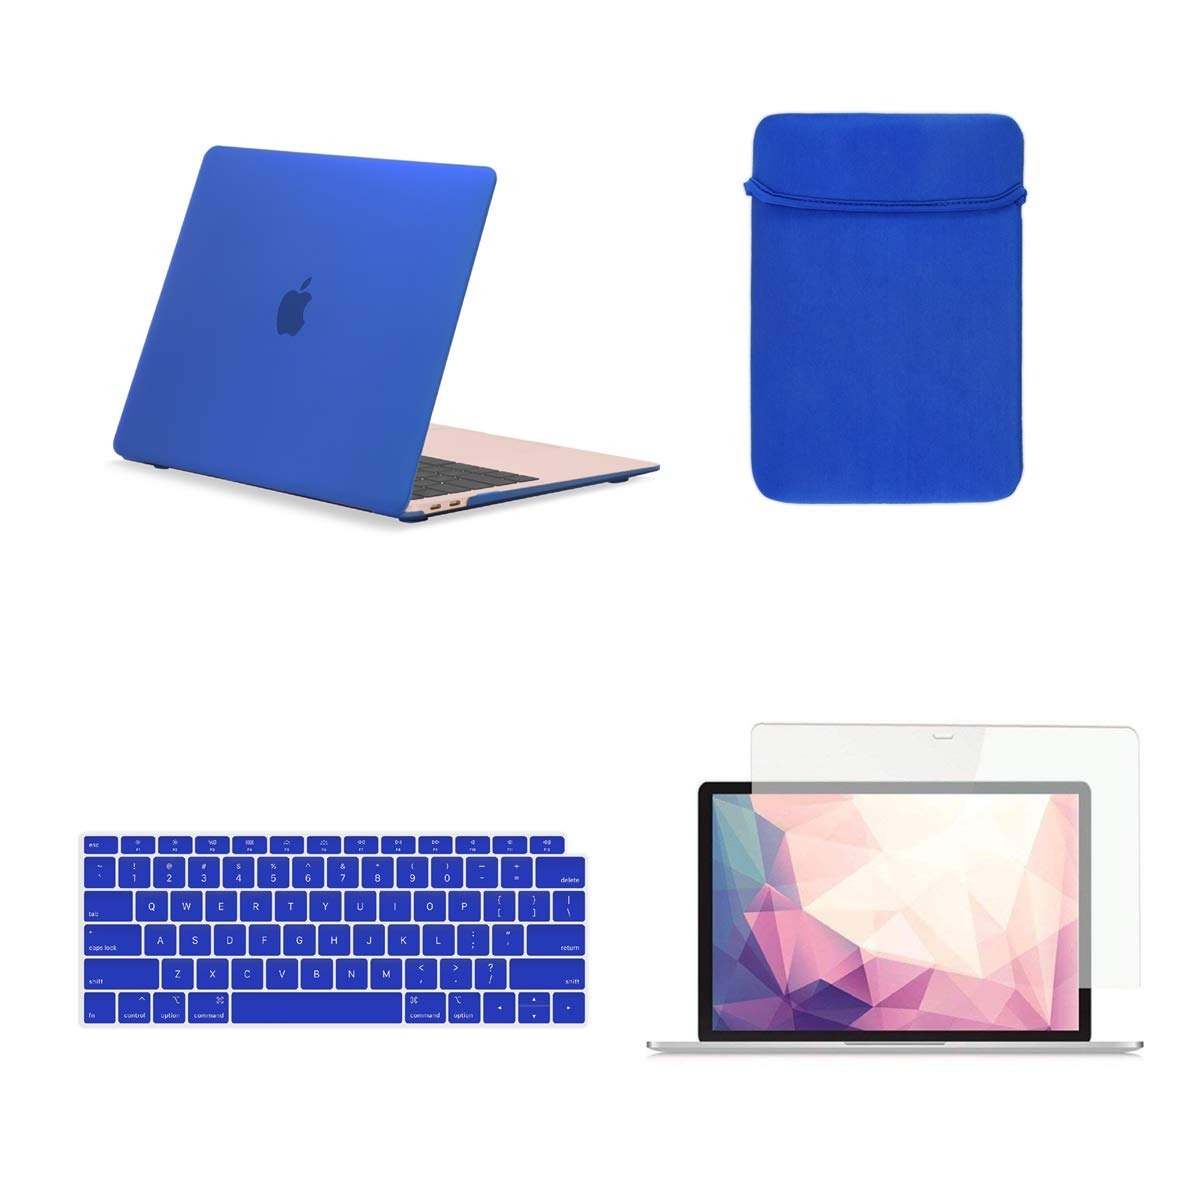 TOP CASE MacBook Air 13 Inch Case A1932 with Retina Display fits Touch ID 2019 2018 Release, 4 in 1 Essential Bundle Rubberized Hard Case, Keyboard Cover, Sleeve, Screen Protector - Royal Blue